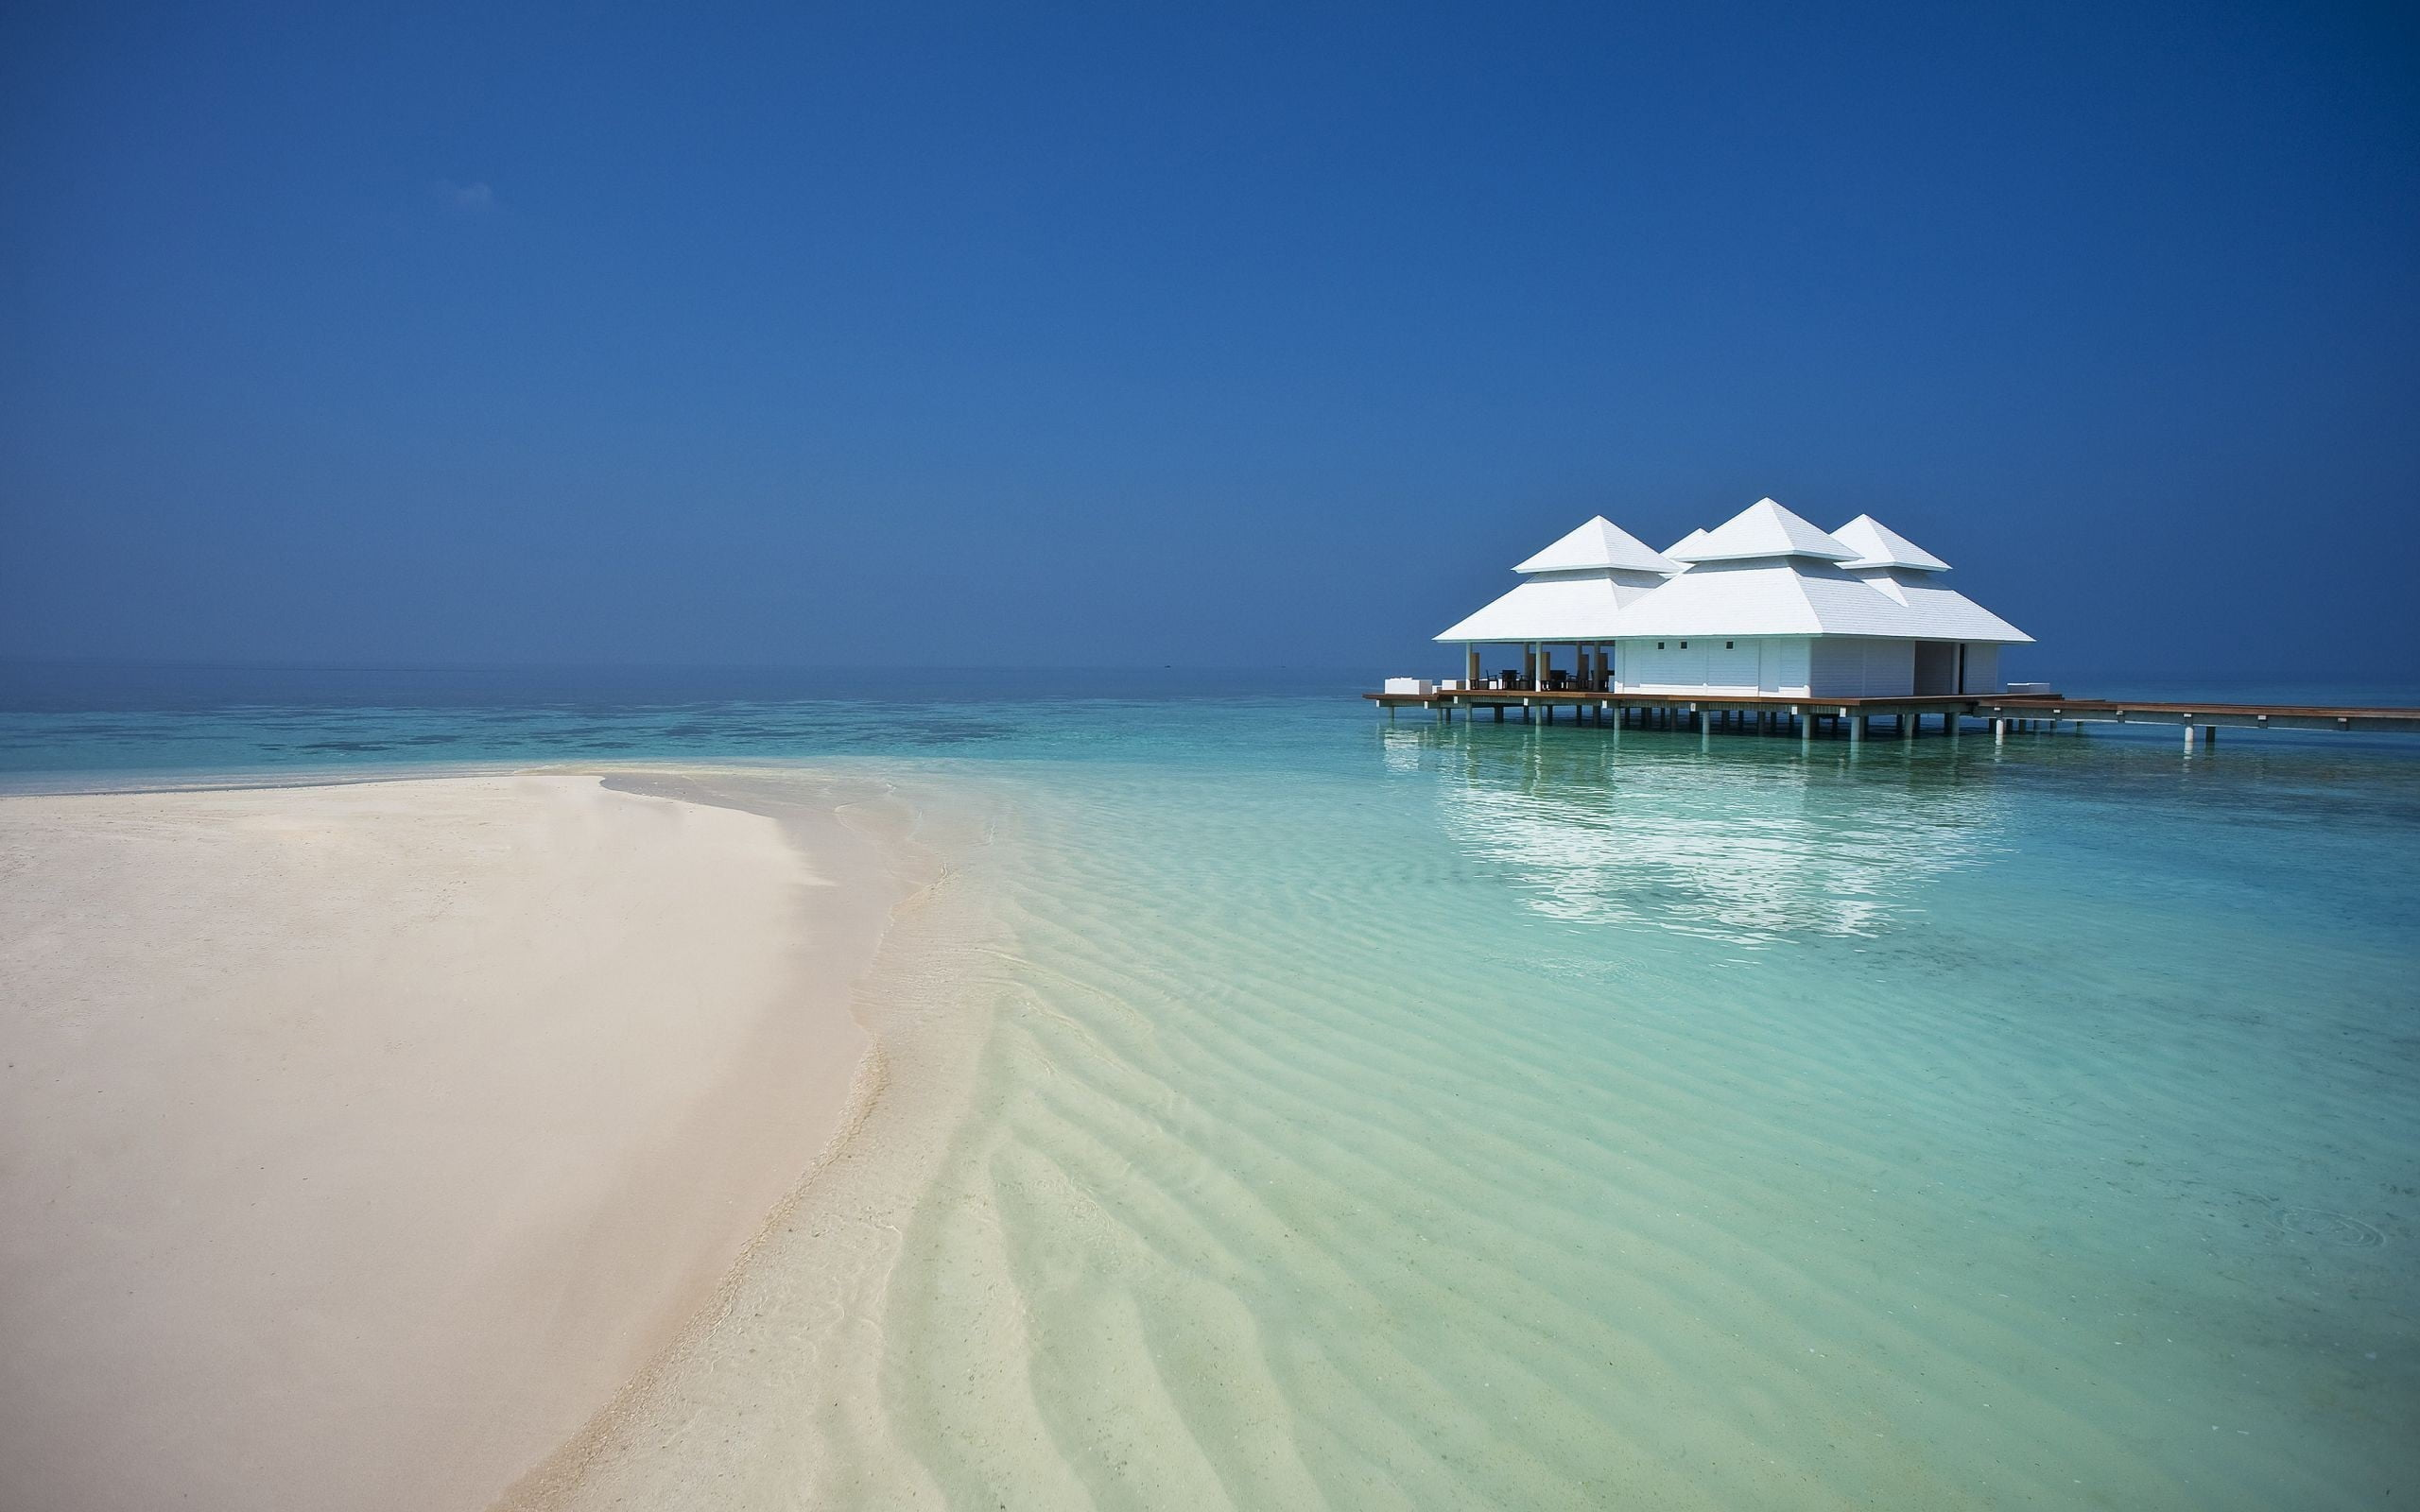 White and brown beach cottage beach waterfront Maldives nature 2560x1600